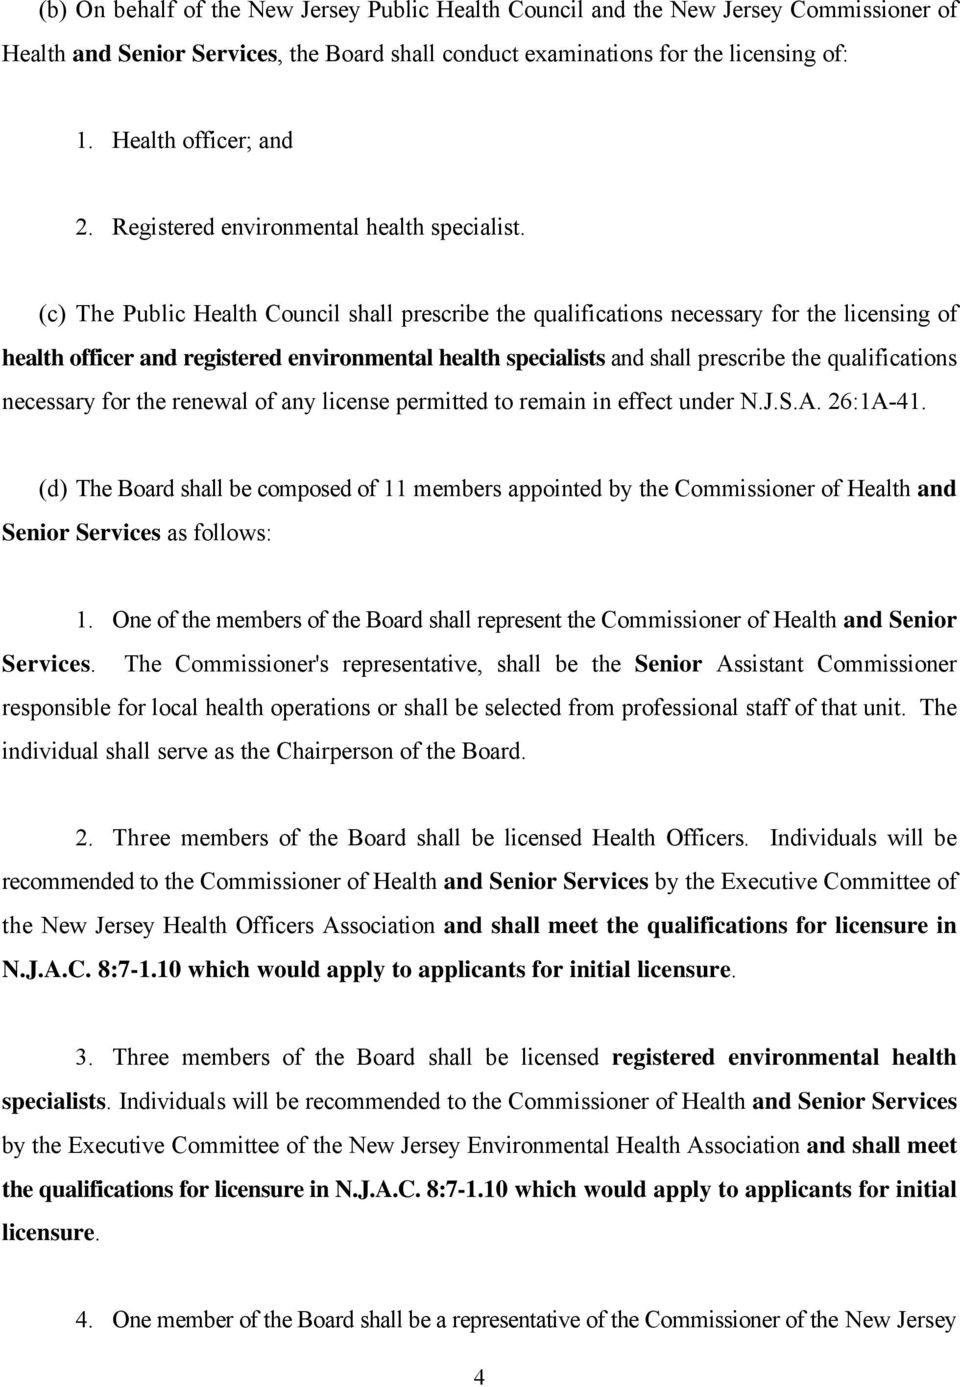 (c) The Public Health Council shall prescribe the qualifications necessary for the licensing of health officer and registered environmental health specialists and shall prescribe the qualifications